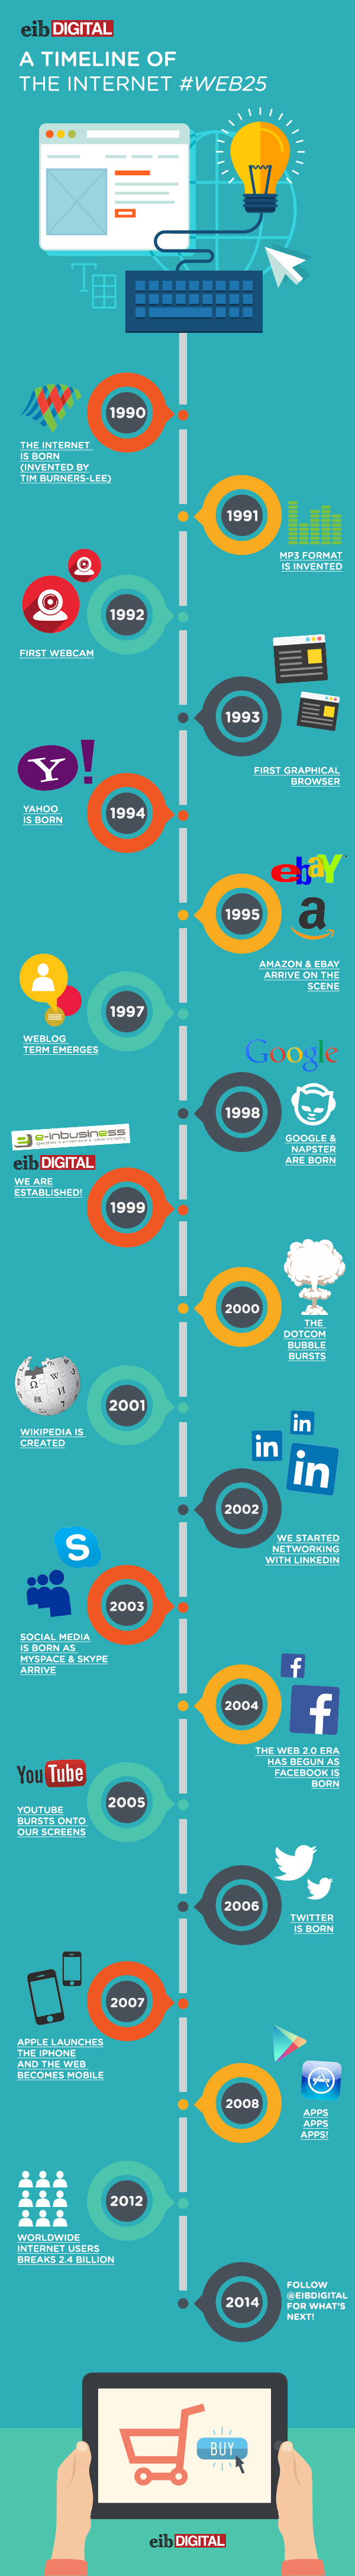 25-years-of-internet